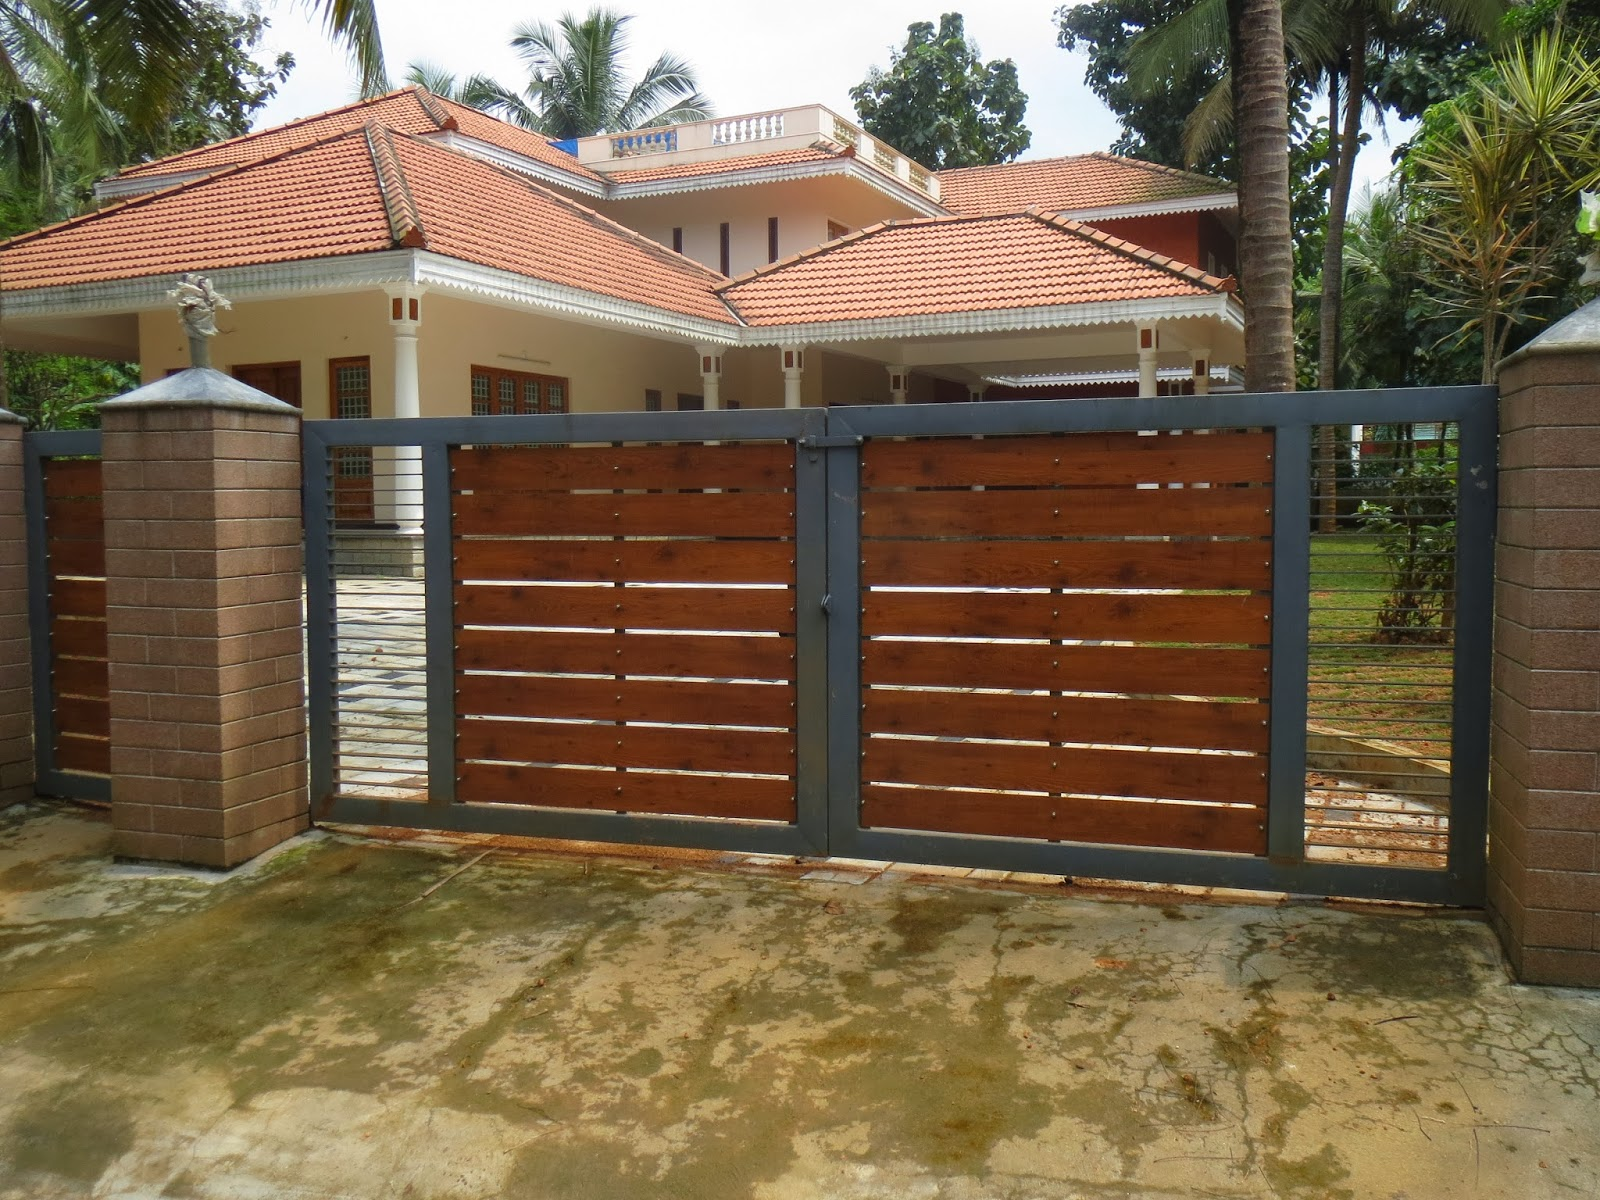 Kerala Gate Designs: House gates in Kerala, India